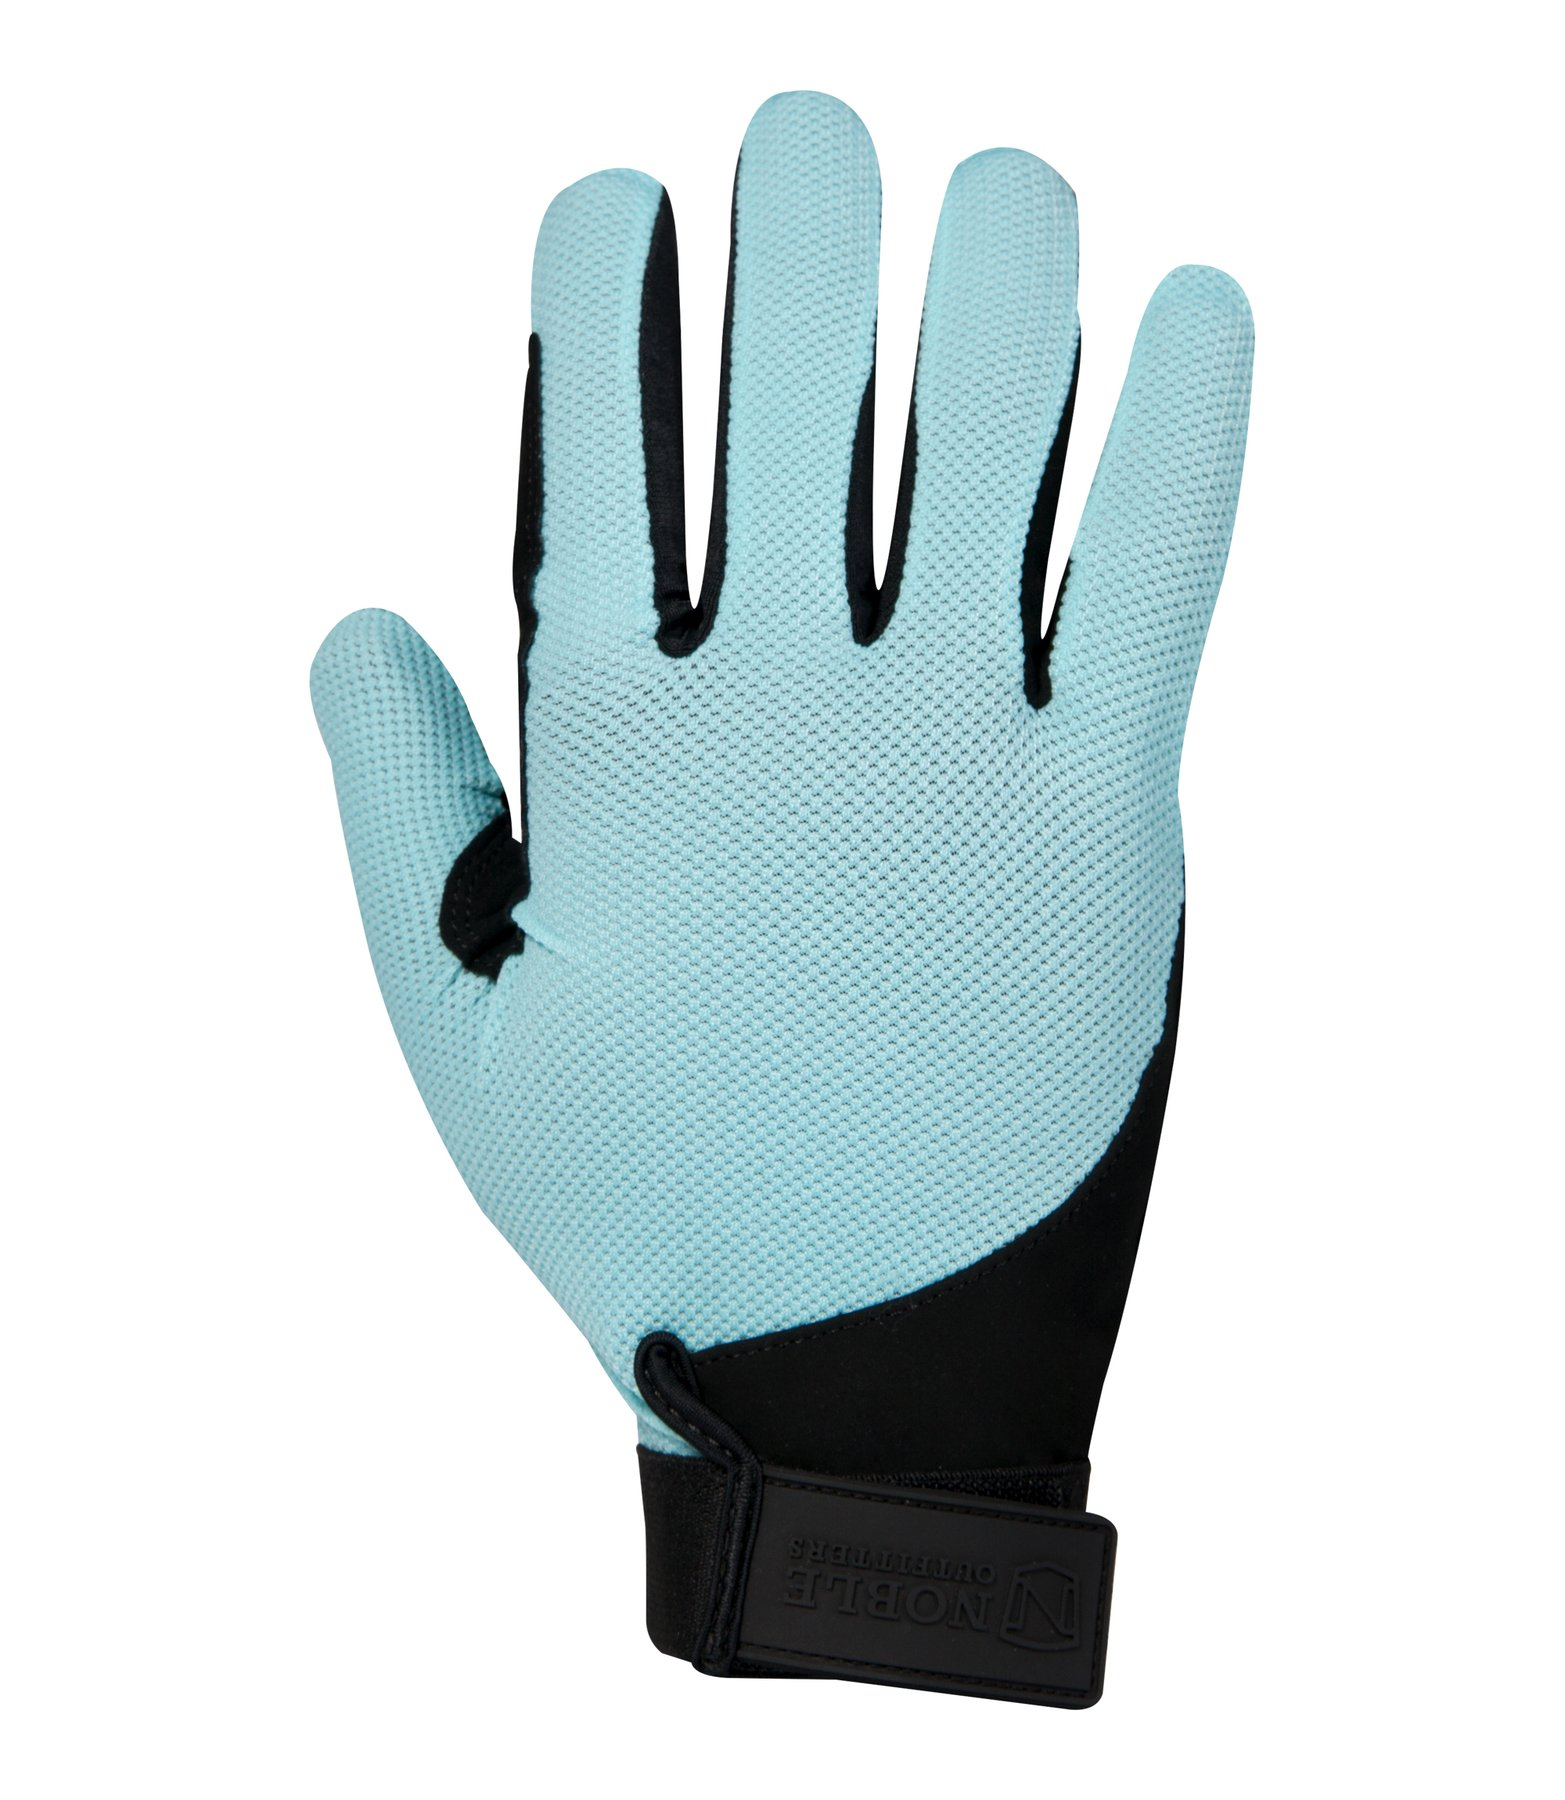 Noble Outfitters Gloves Perfect Fit Mesh Horseback Aqua Sky Turquoise Blue